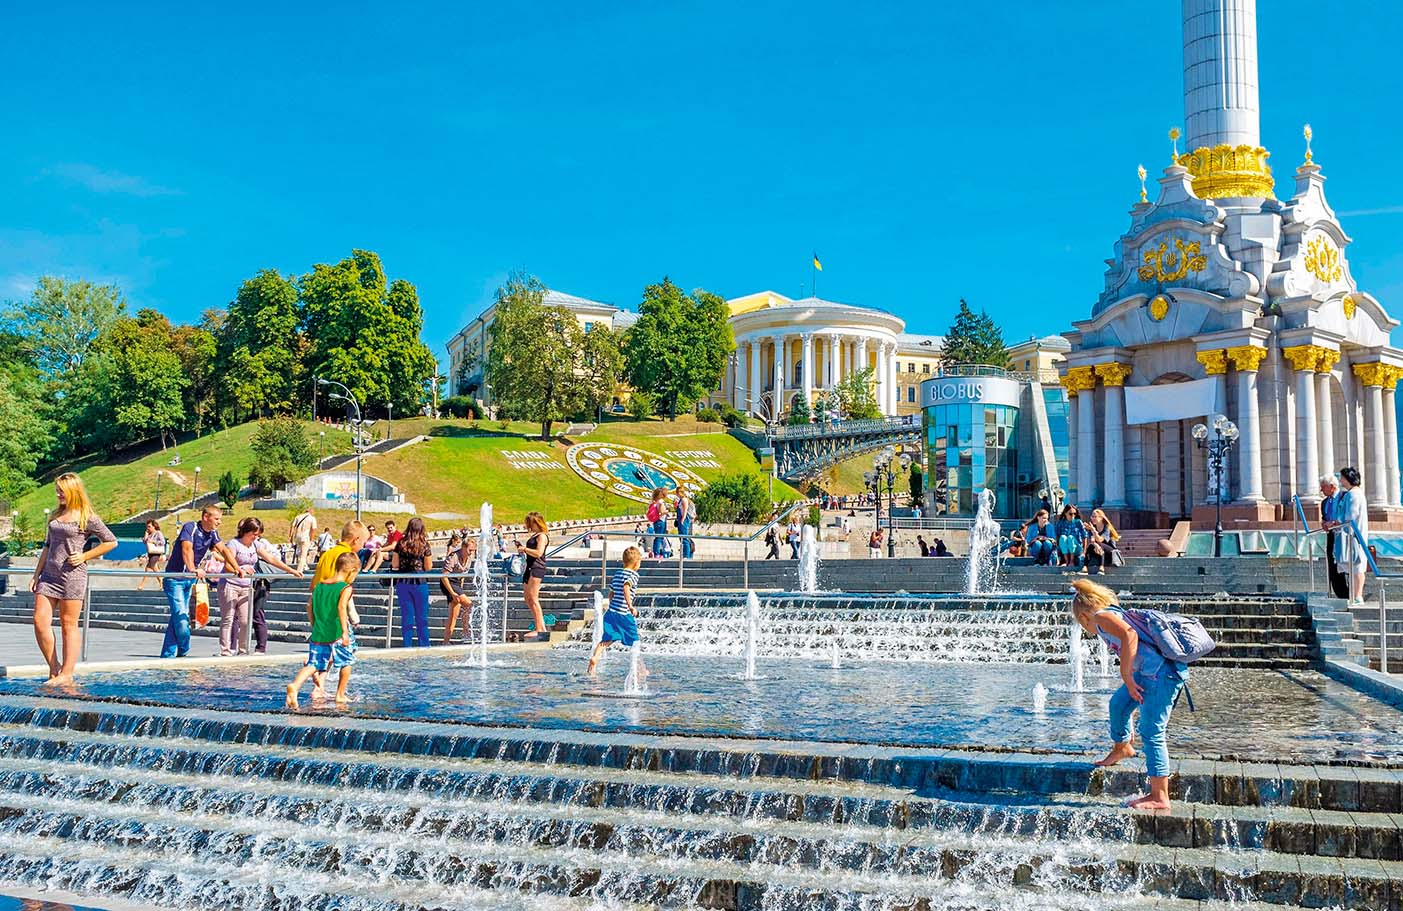 KIEV, UKRAINE - SEPTEMBER 8, 2016: The kids play in fountain in Maidan Nezalezhnosti (Independence Square) with the flower clock and October Palace on background, on September 8 in Kiev., Image: 318021681, License: Rights-managed, Restrictions: , Model Release: no, Credit line: Profimedia, Alamy